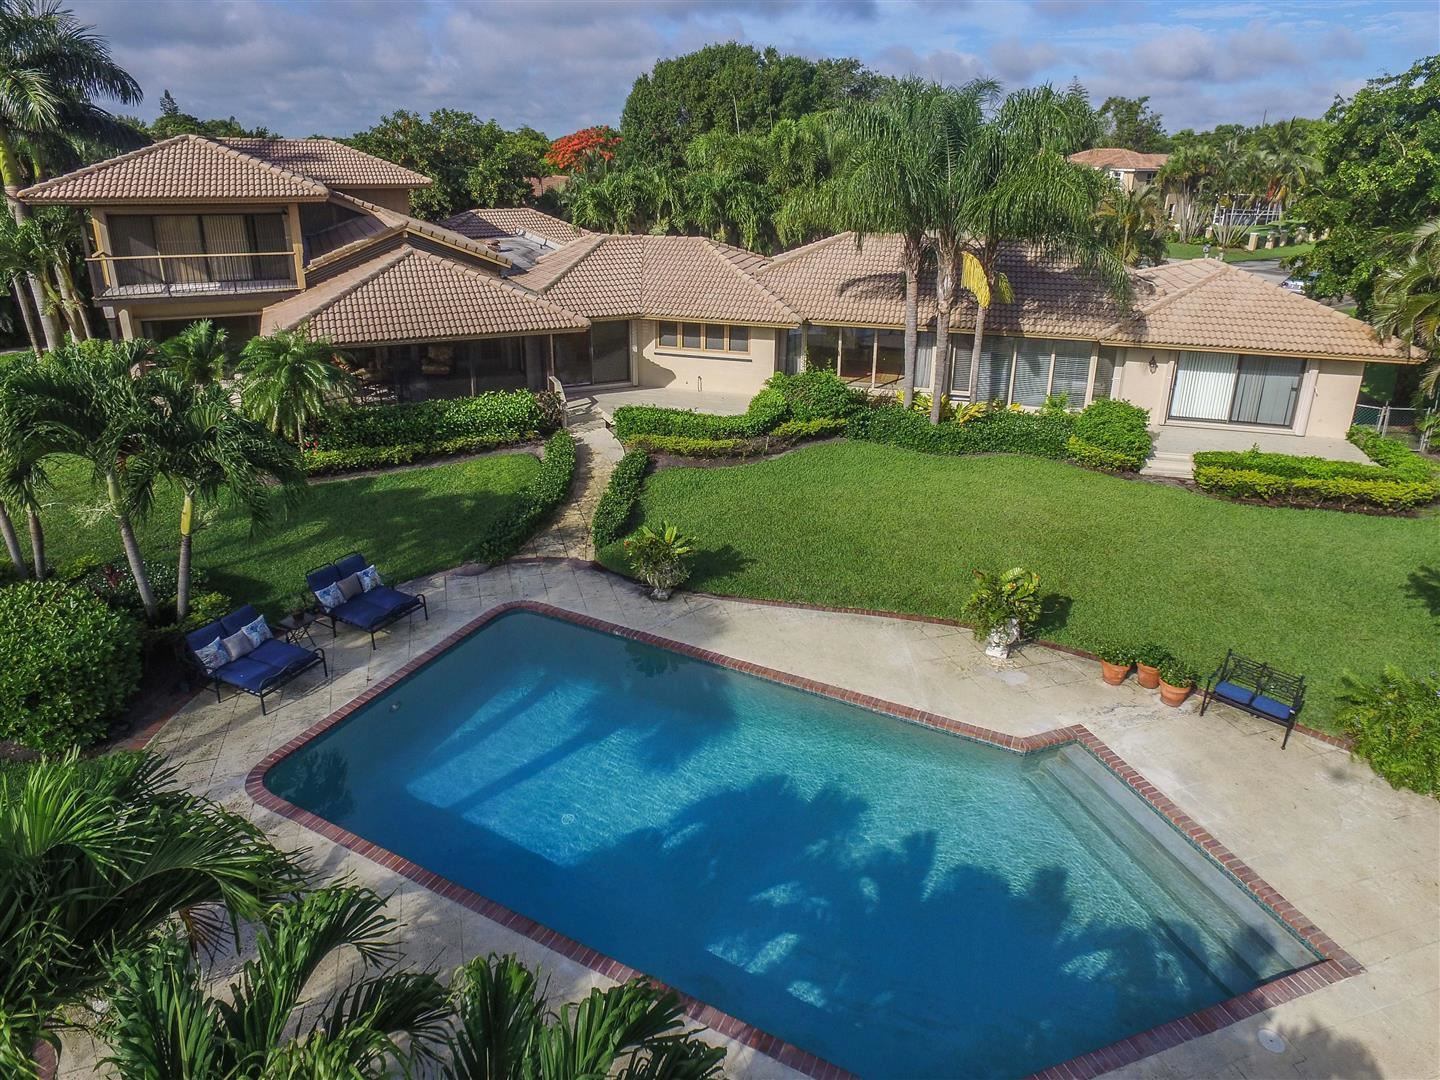 Photo of 6230 NW 4th Avenue, Boca Raton, FL 33487 (MLS # RX-10716551)